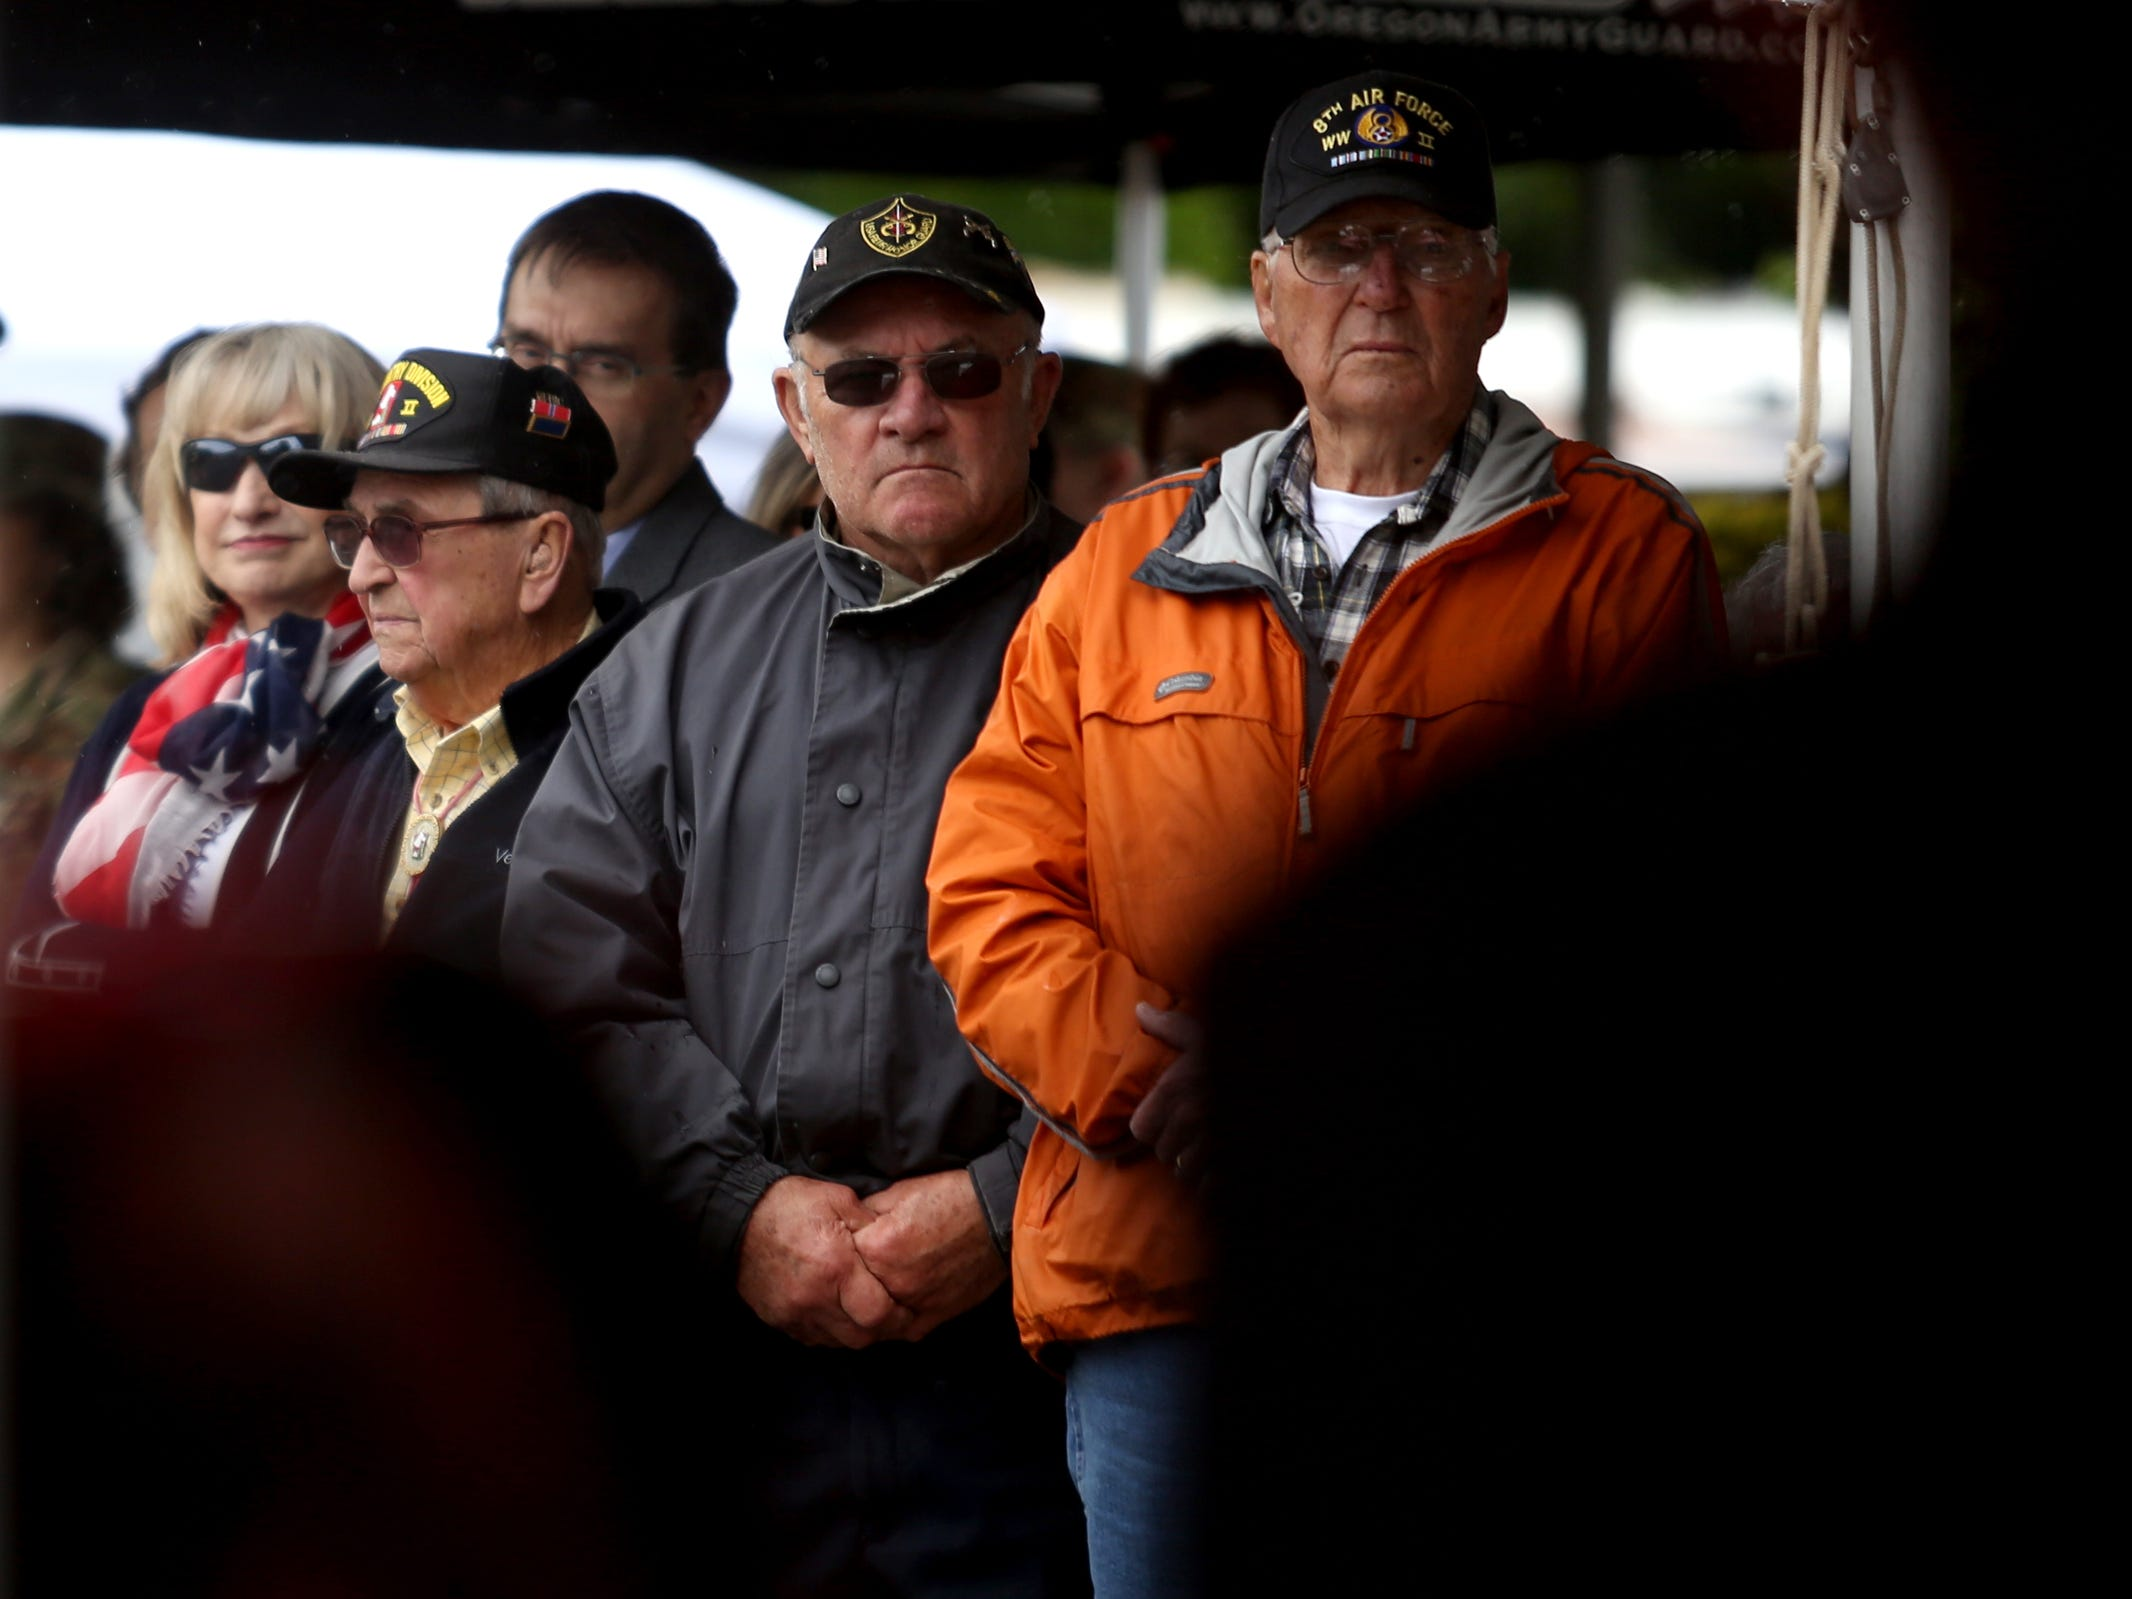 Veterans stand during a medley of military anthems during an Armed Forces Day celebration at the Oregon State Capitol in Salem on May 14, 2019.